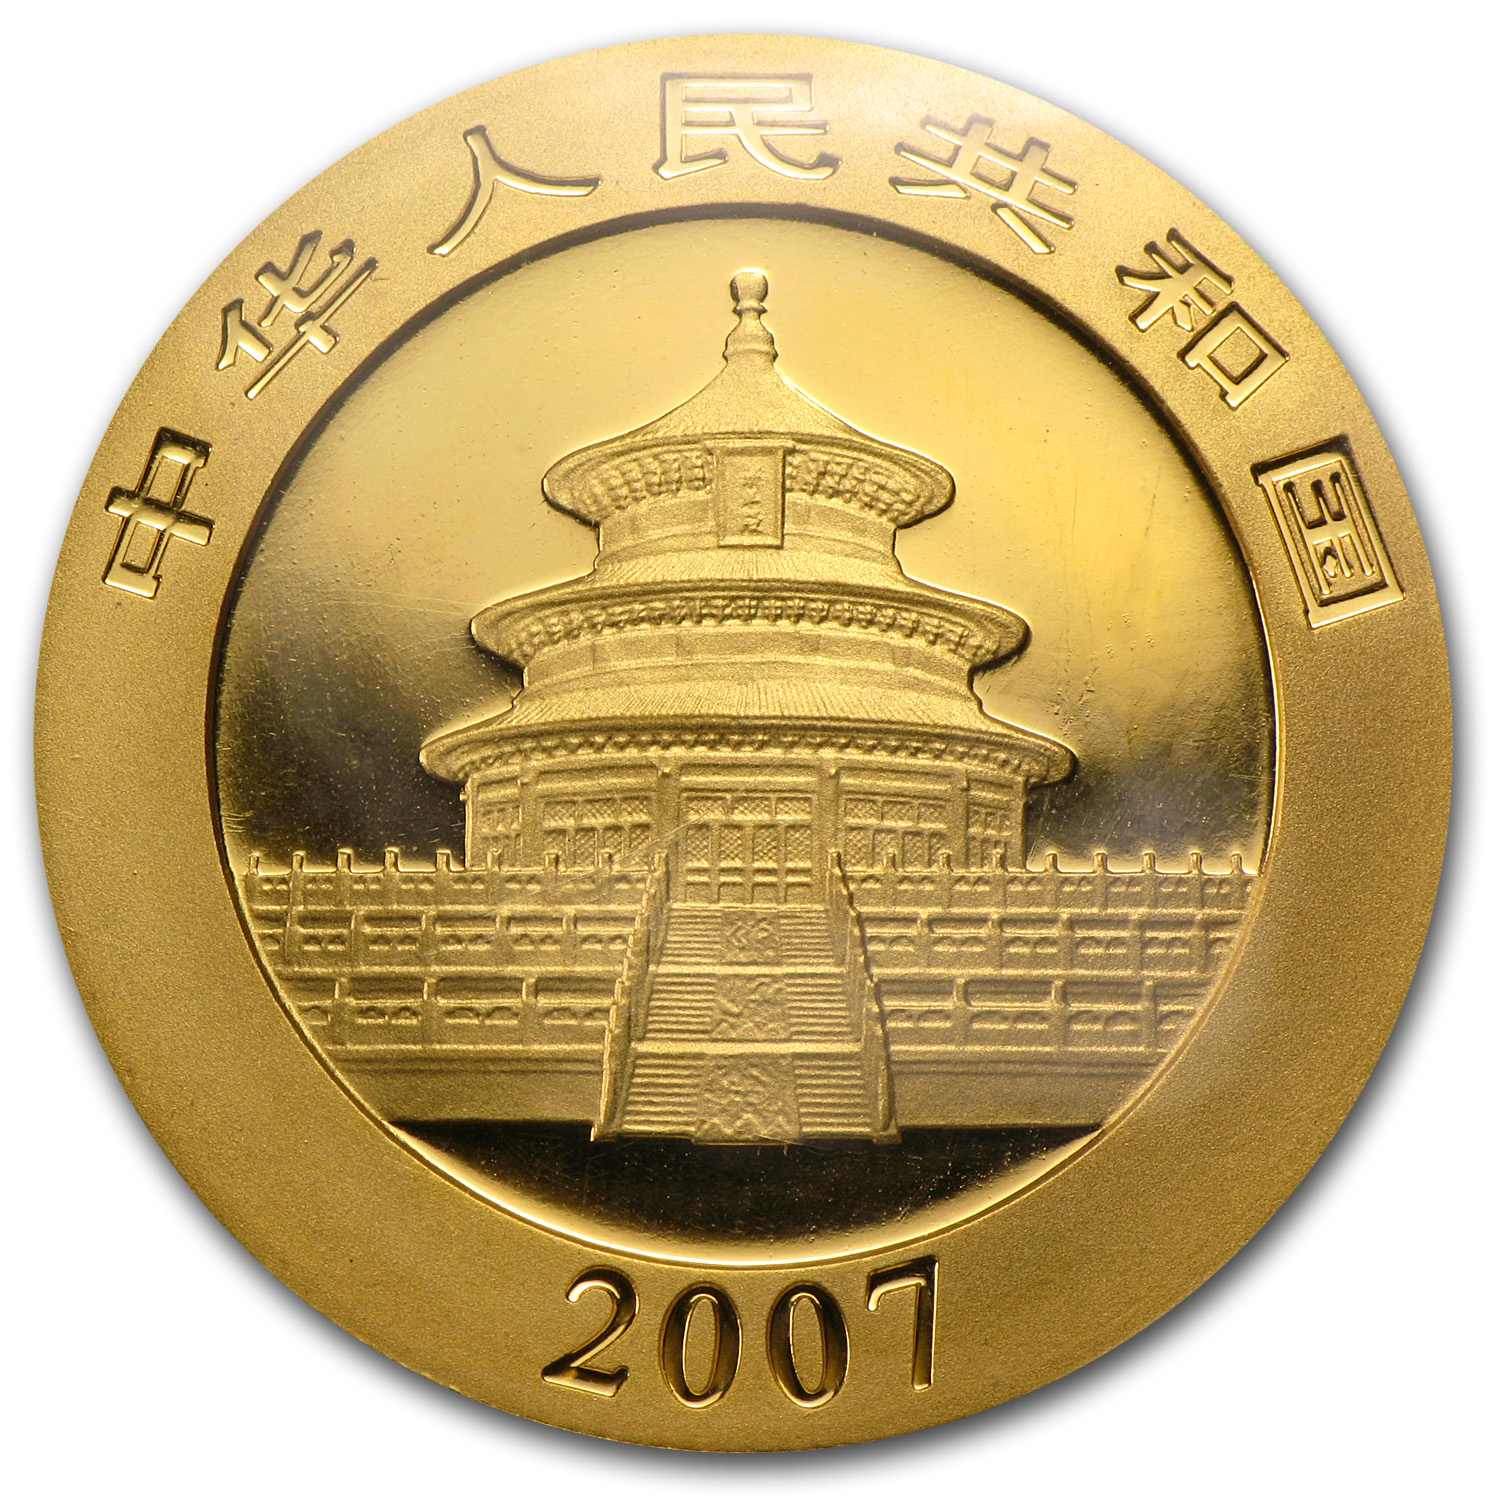 2007 China 1/2 oz Gold Panda BU (Sealed)